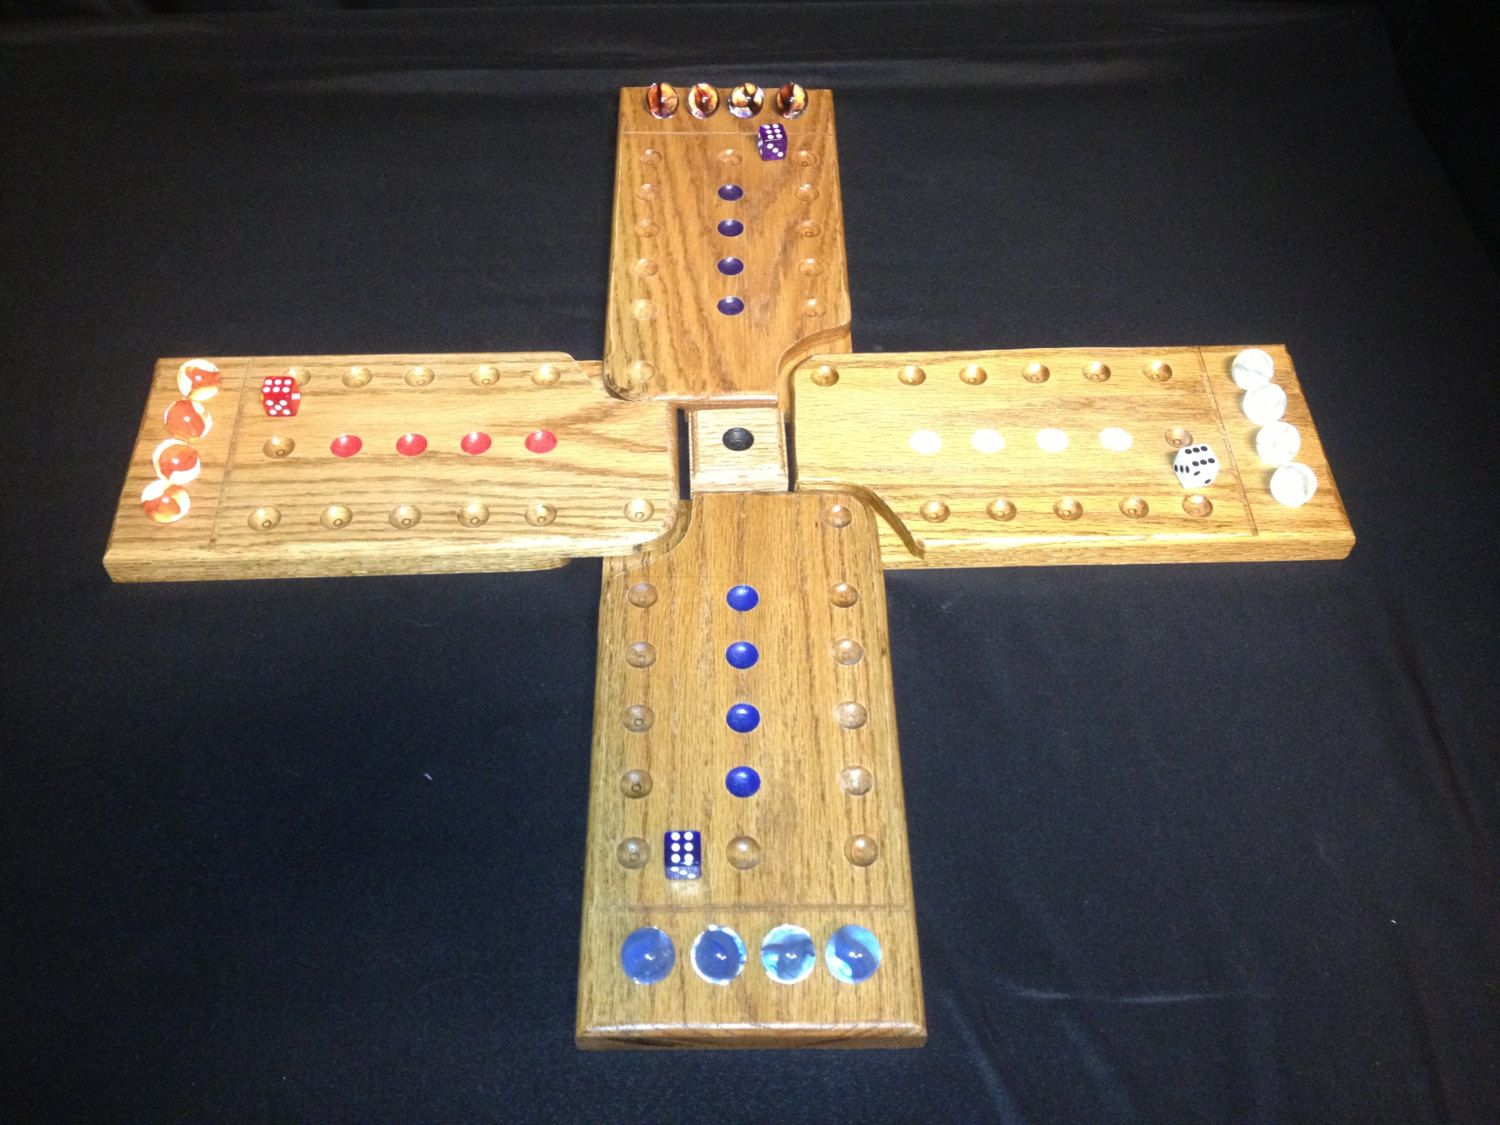 Popular marble game in a new style. Individual boards